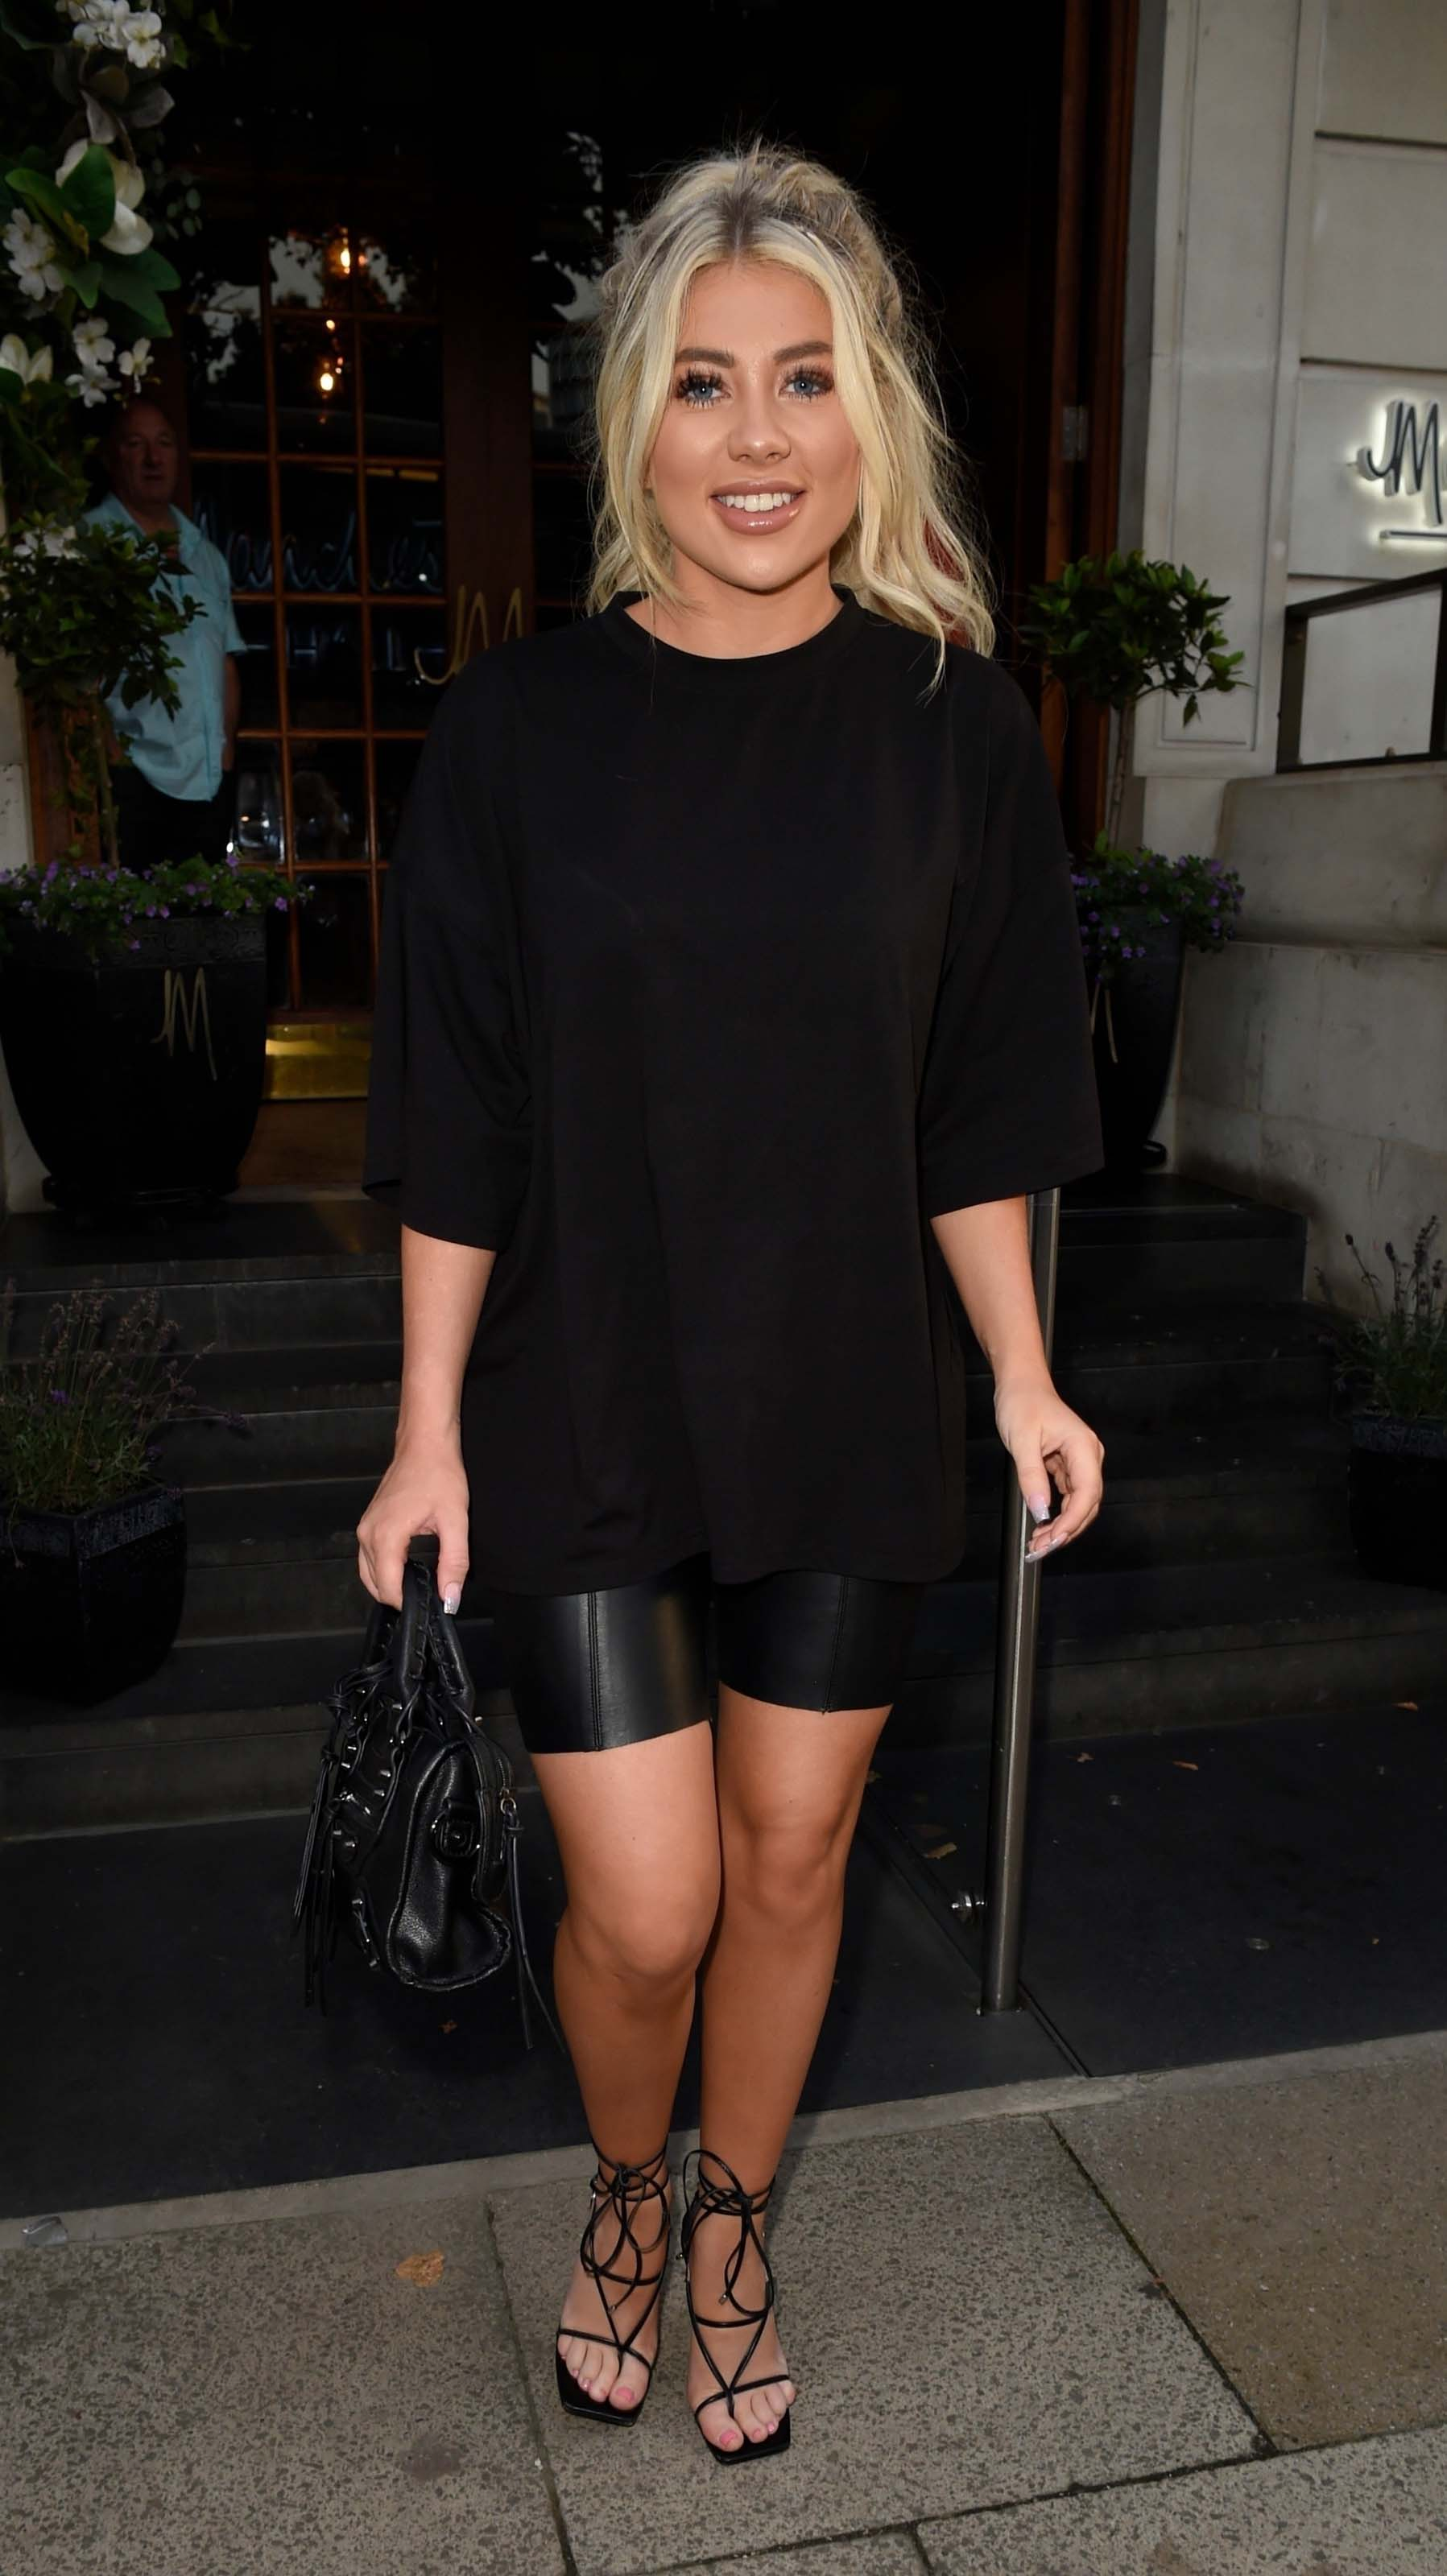 Paige Turley puts on leggy display as she enjoys night out